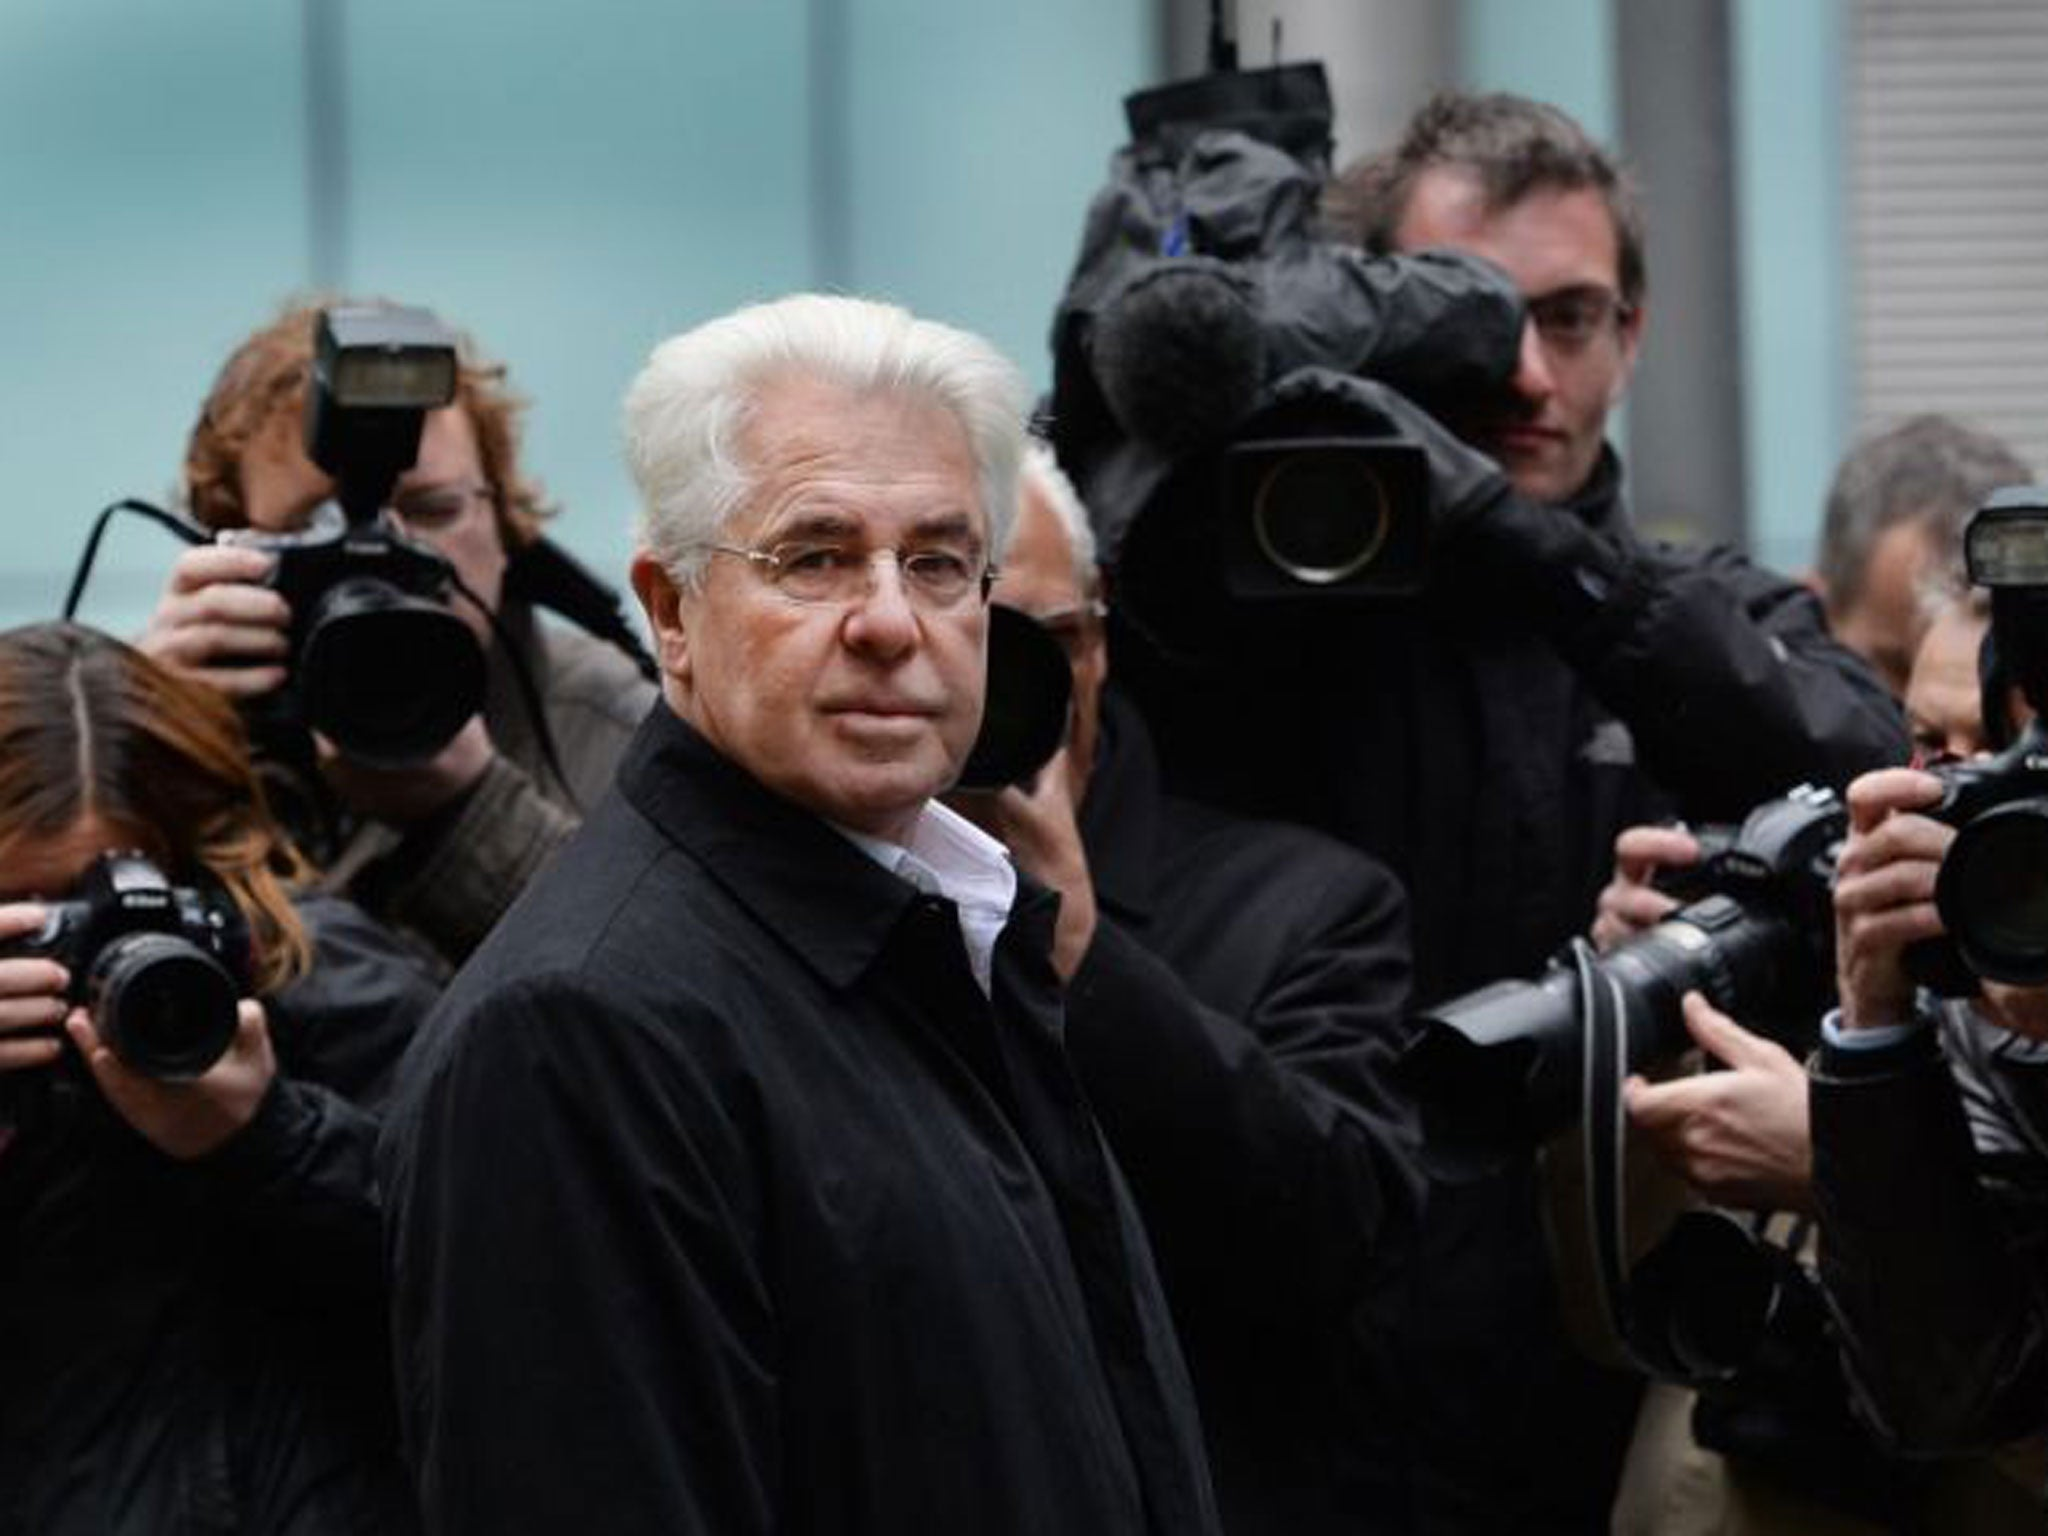 Max Clifford jailed: Scotland Yard to look into fresh sex allegations against publicist